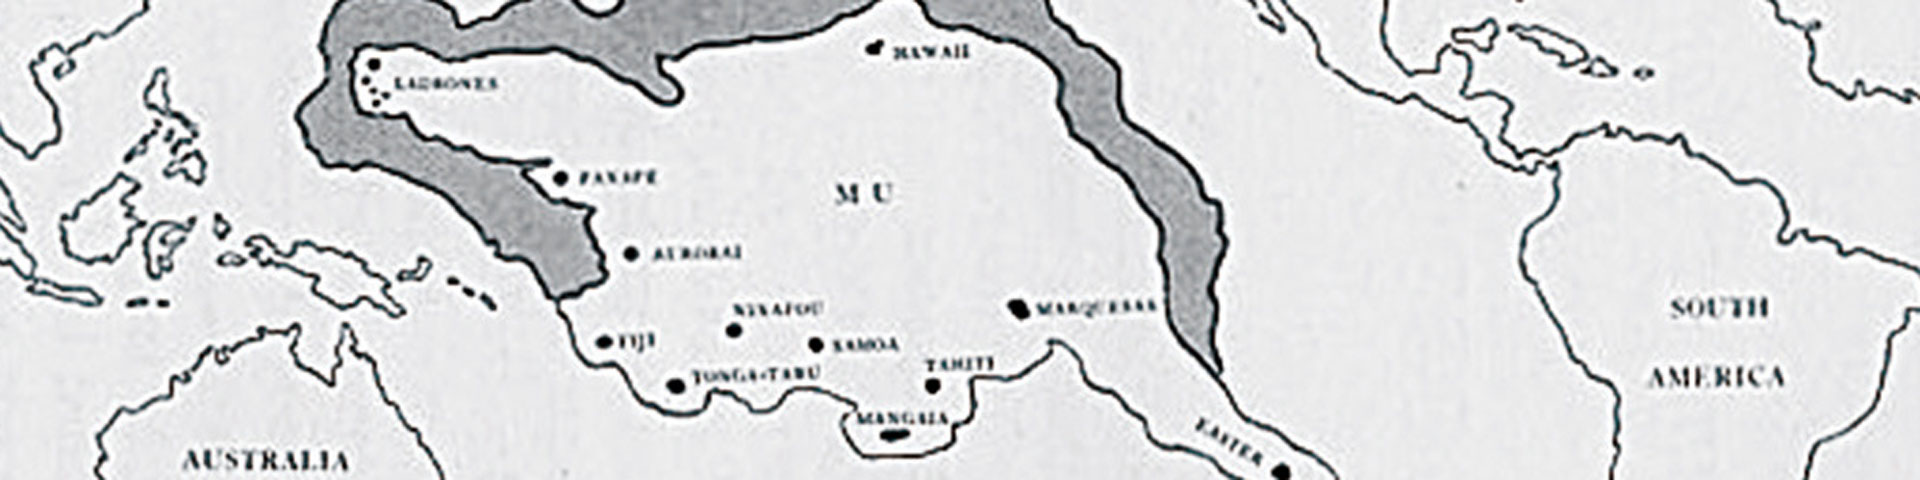 A map of the lost continent of Mu, indicating that it is in the Pacific Ocean.